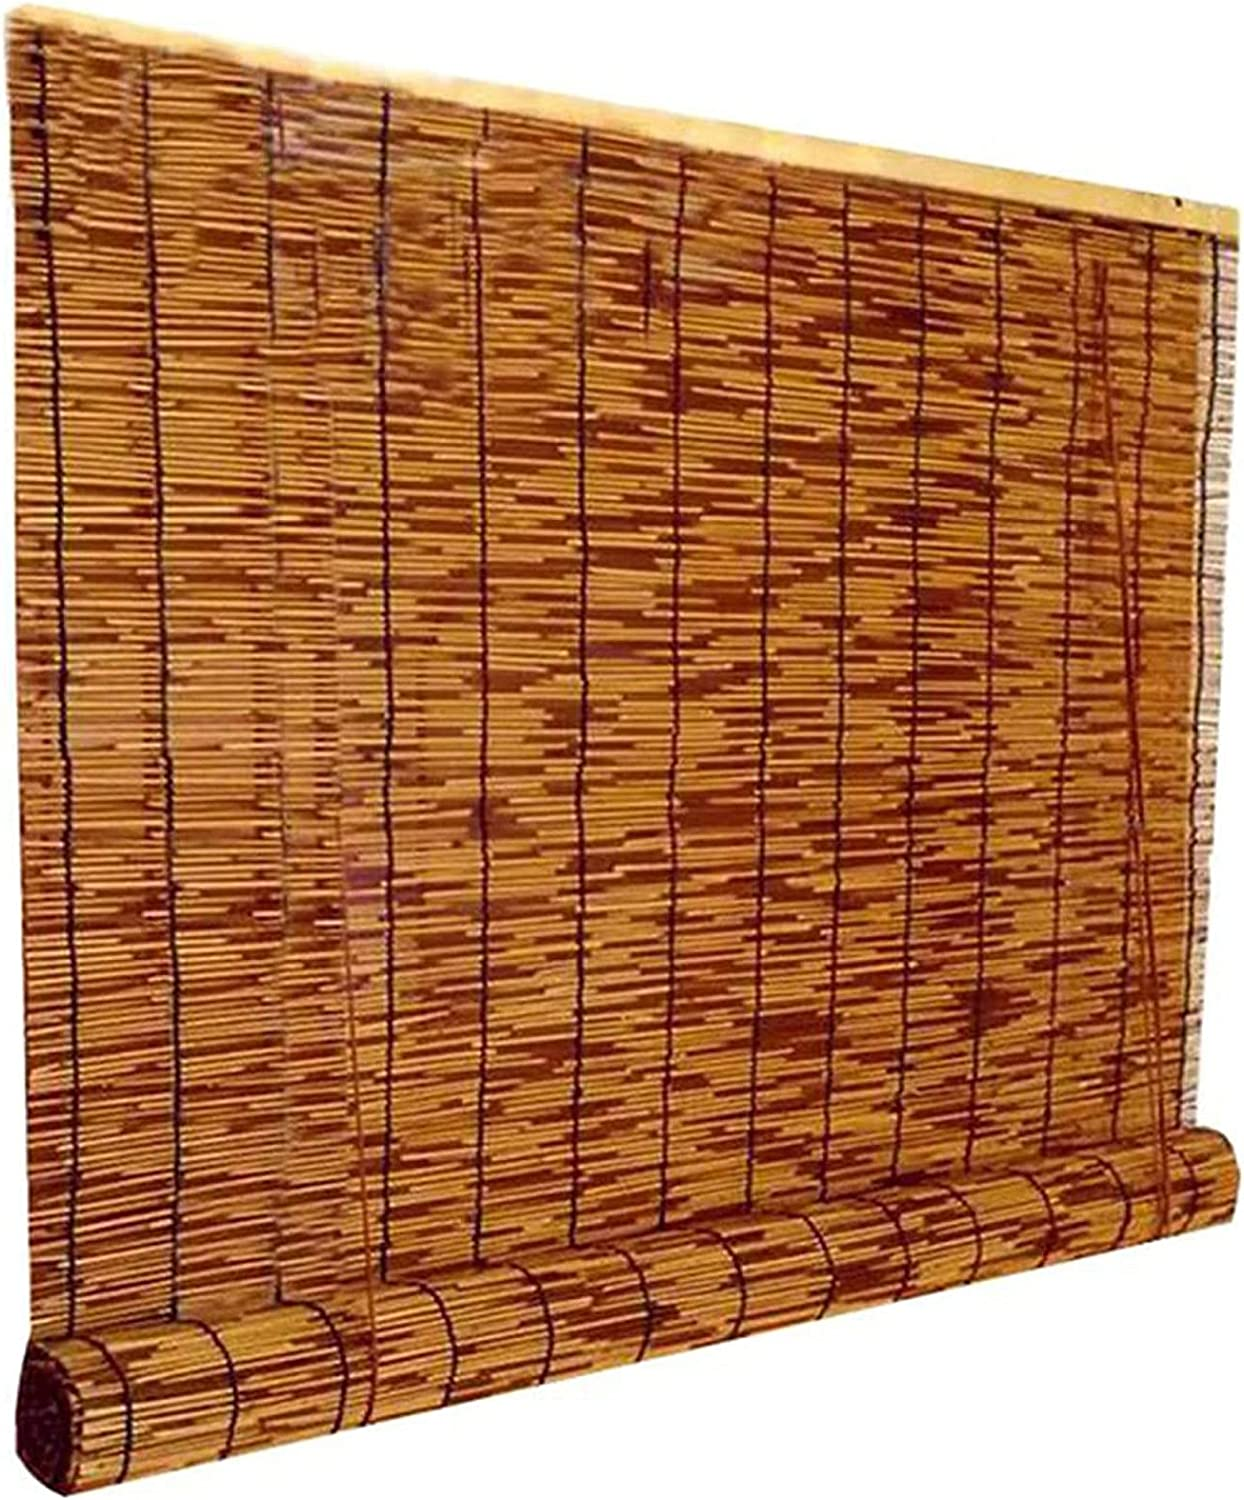 TBCHE Woven Blinds Reed Sun Shade Regular dealer Up St Pastoral Patio for Sale SALE% OFF Roll